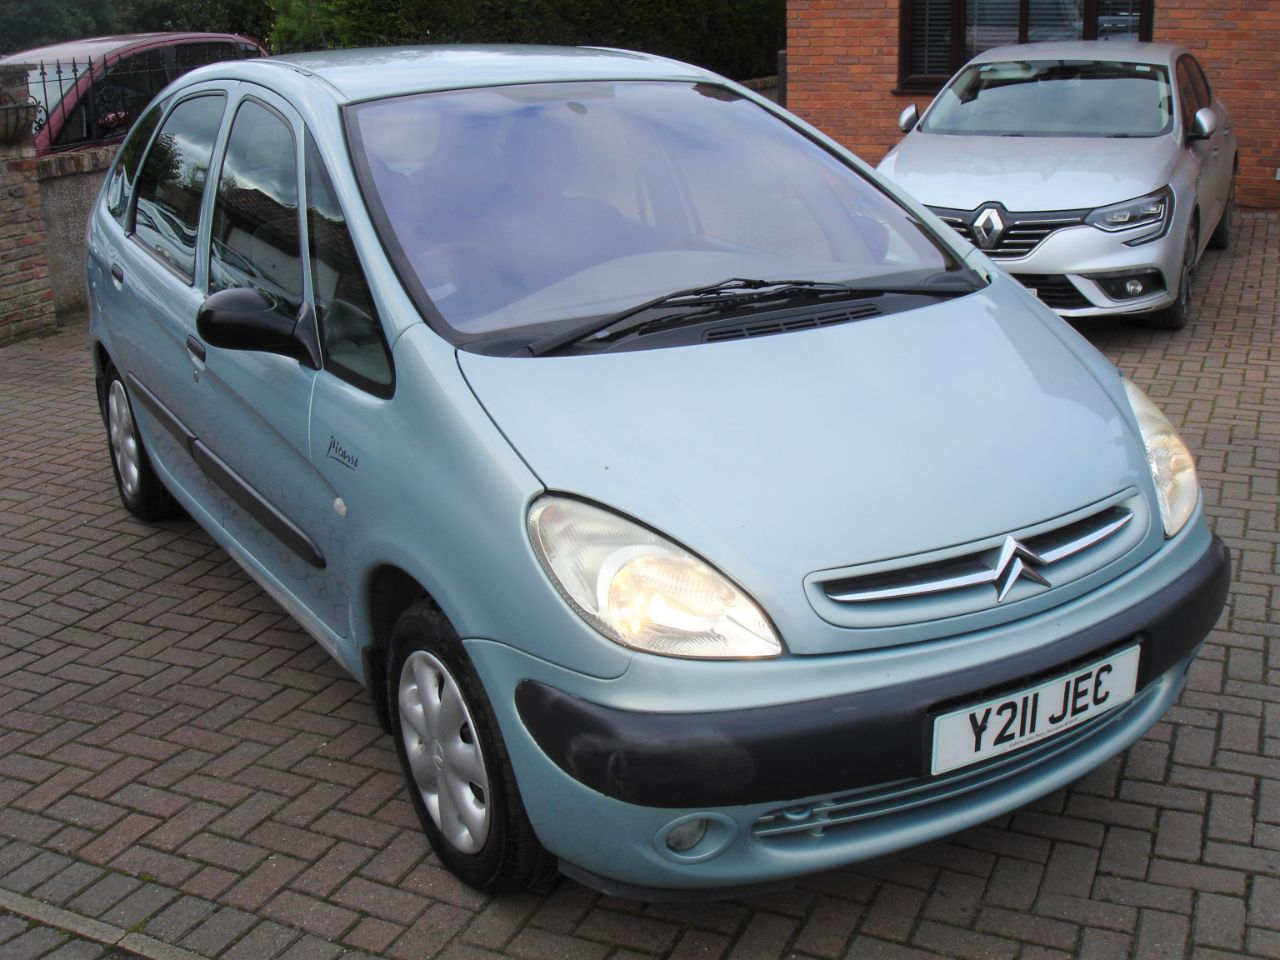 Citroen Xsara Picasso 2.0 HDi SX 5dr MPV Diesel Metallic Green at Level Pitch Selby